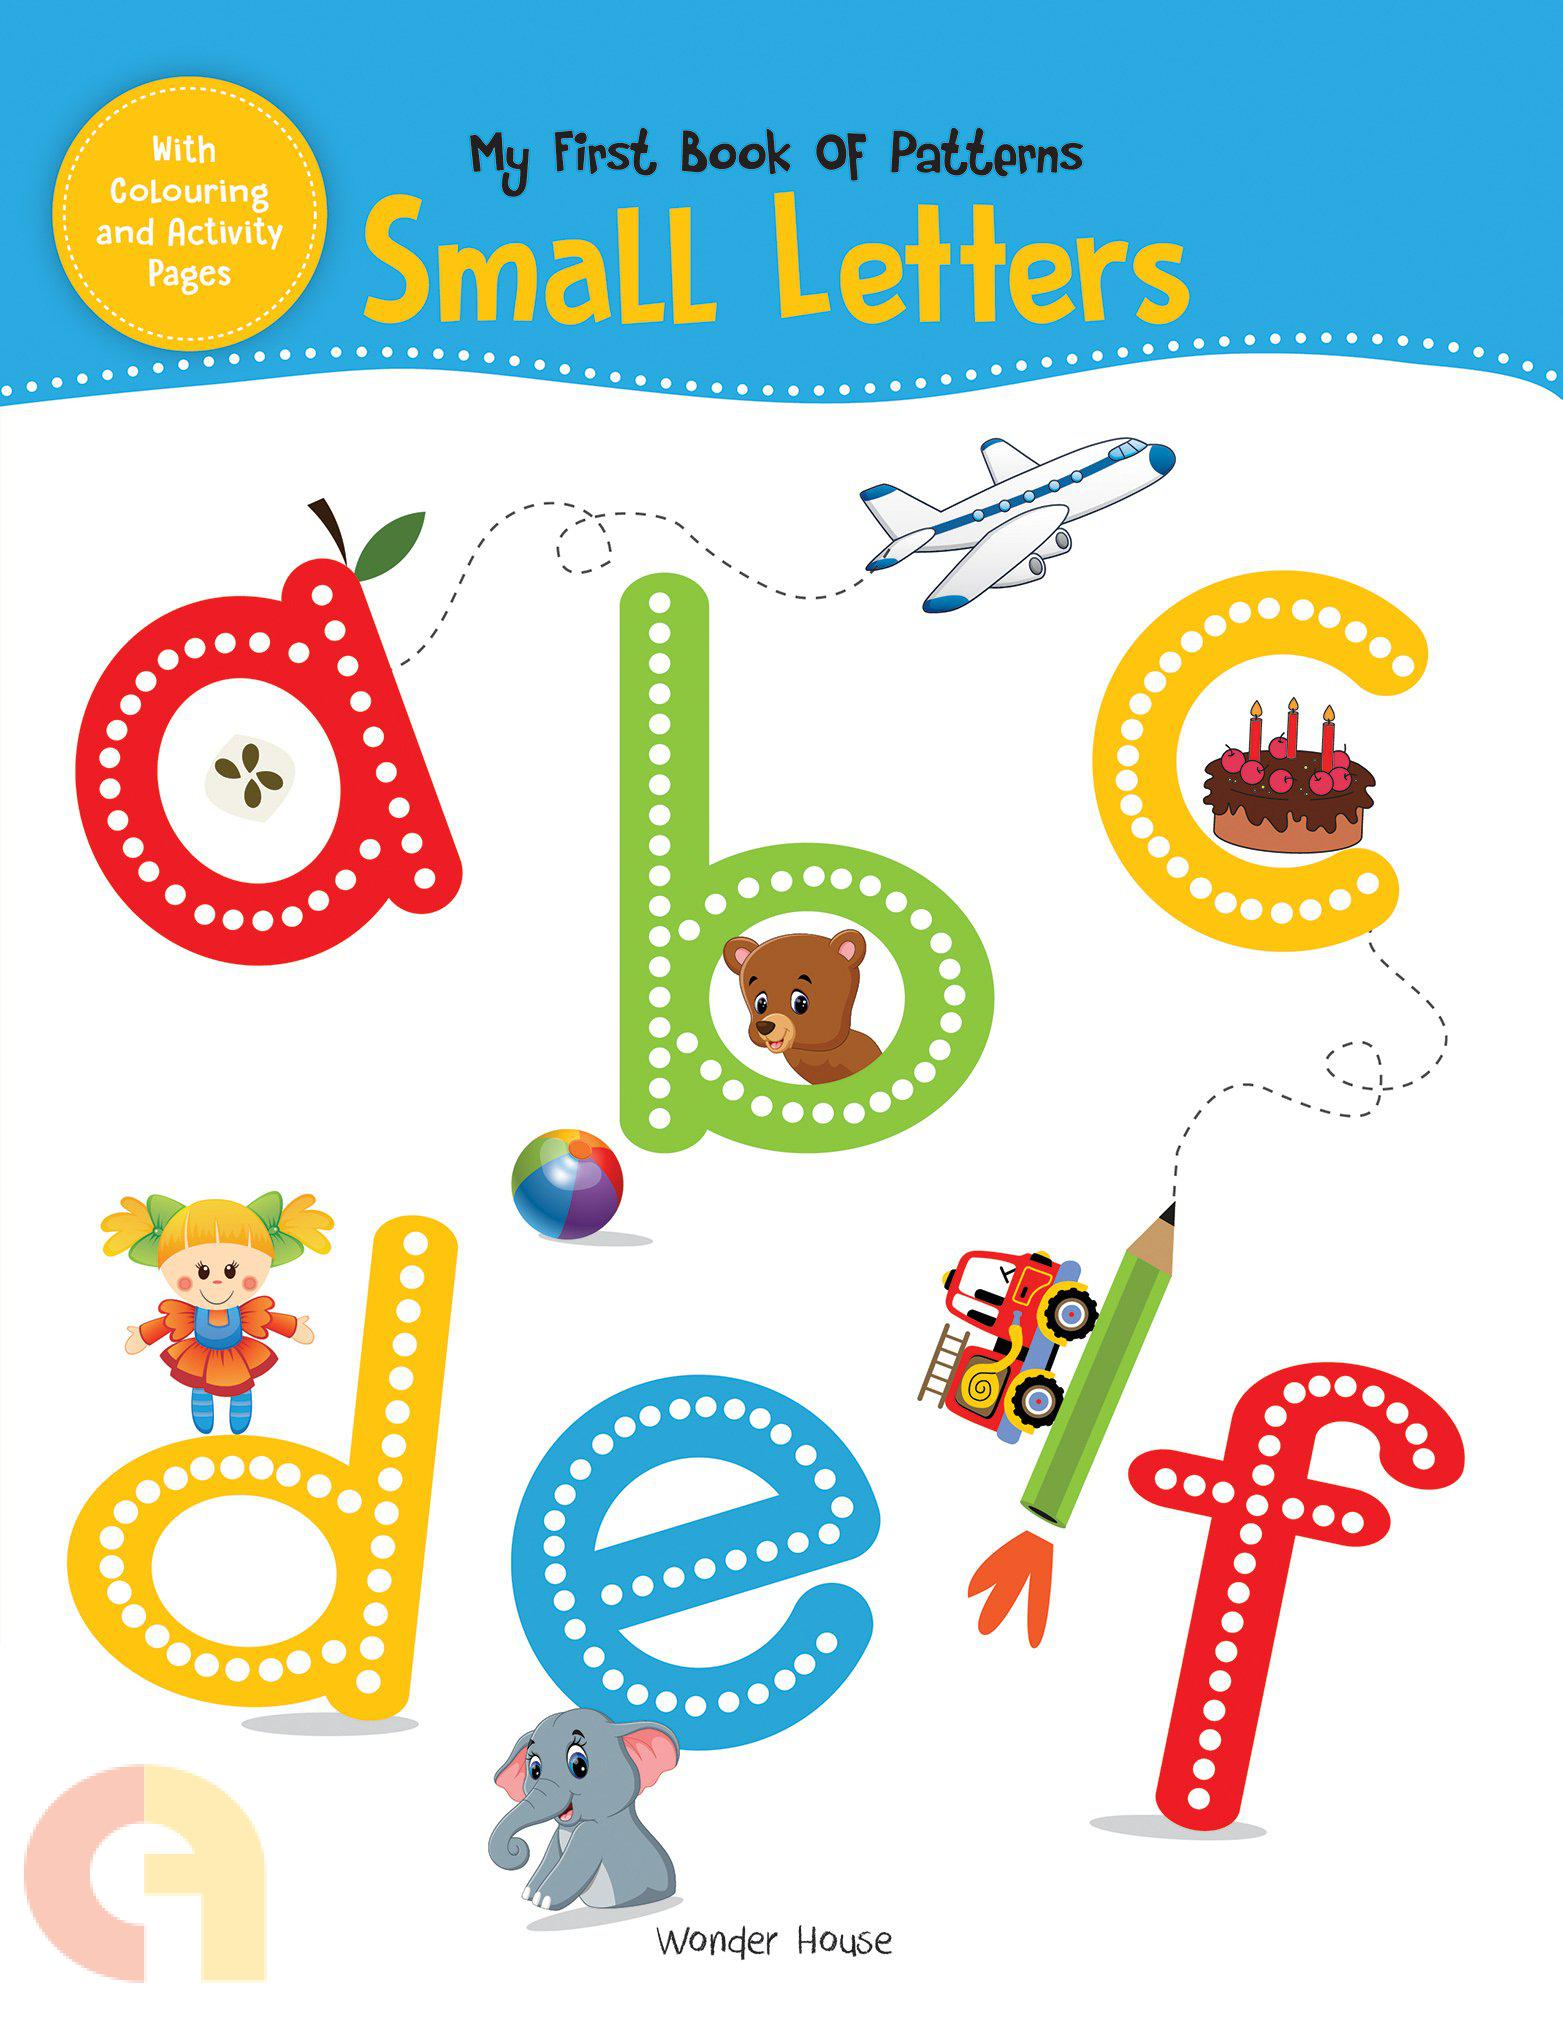 My First Book of Patterns: Small Letters